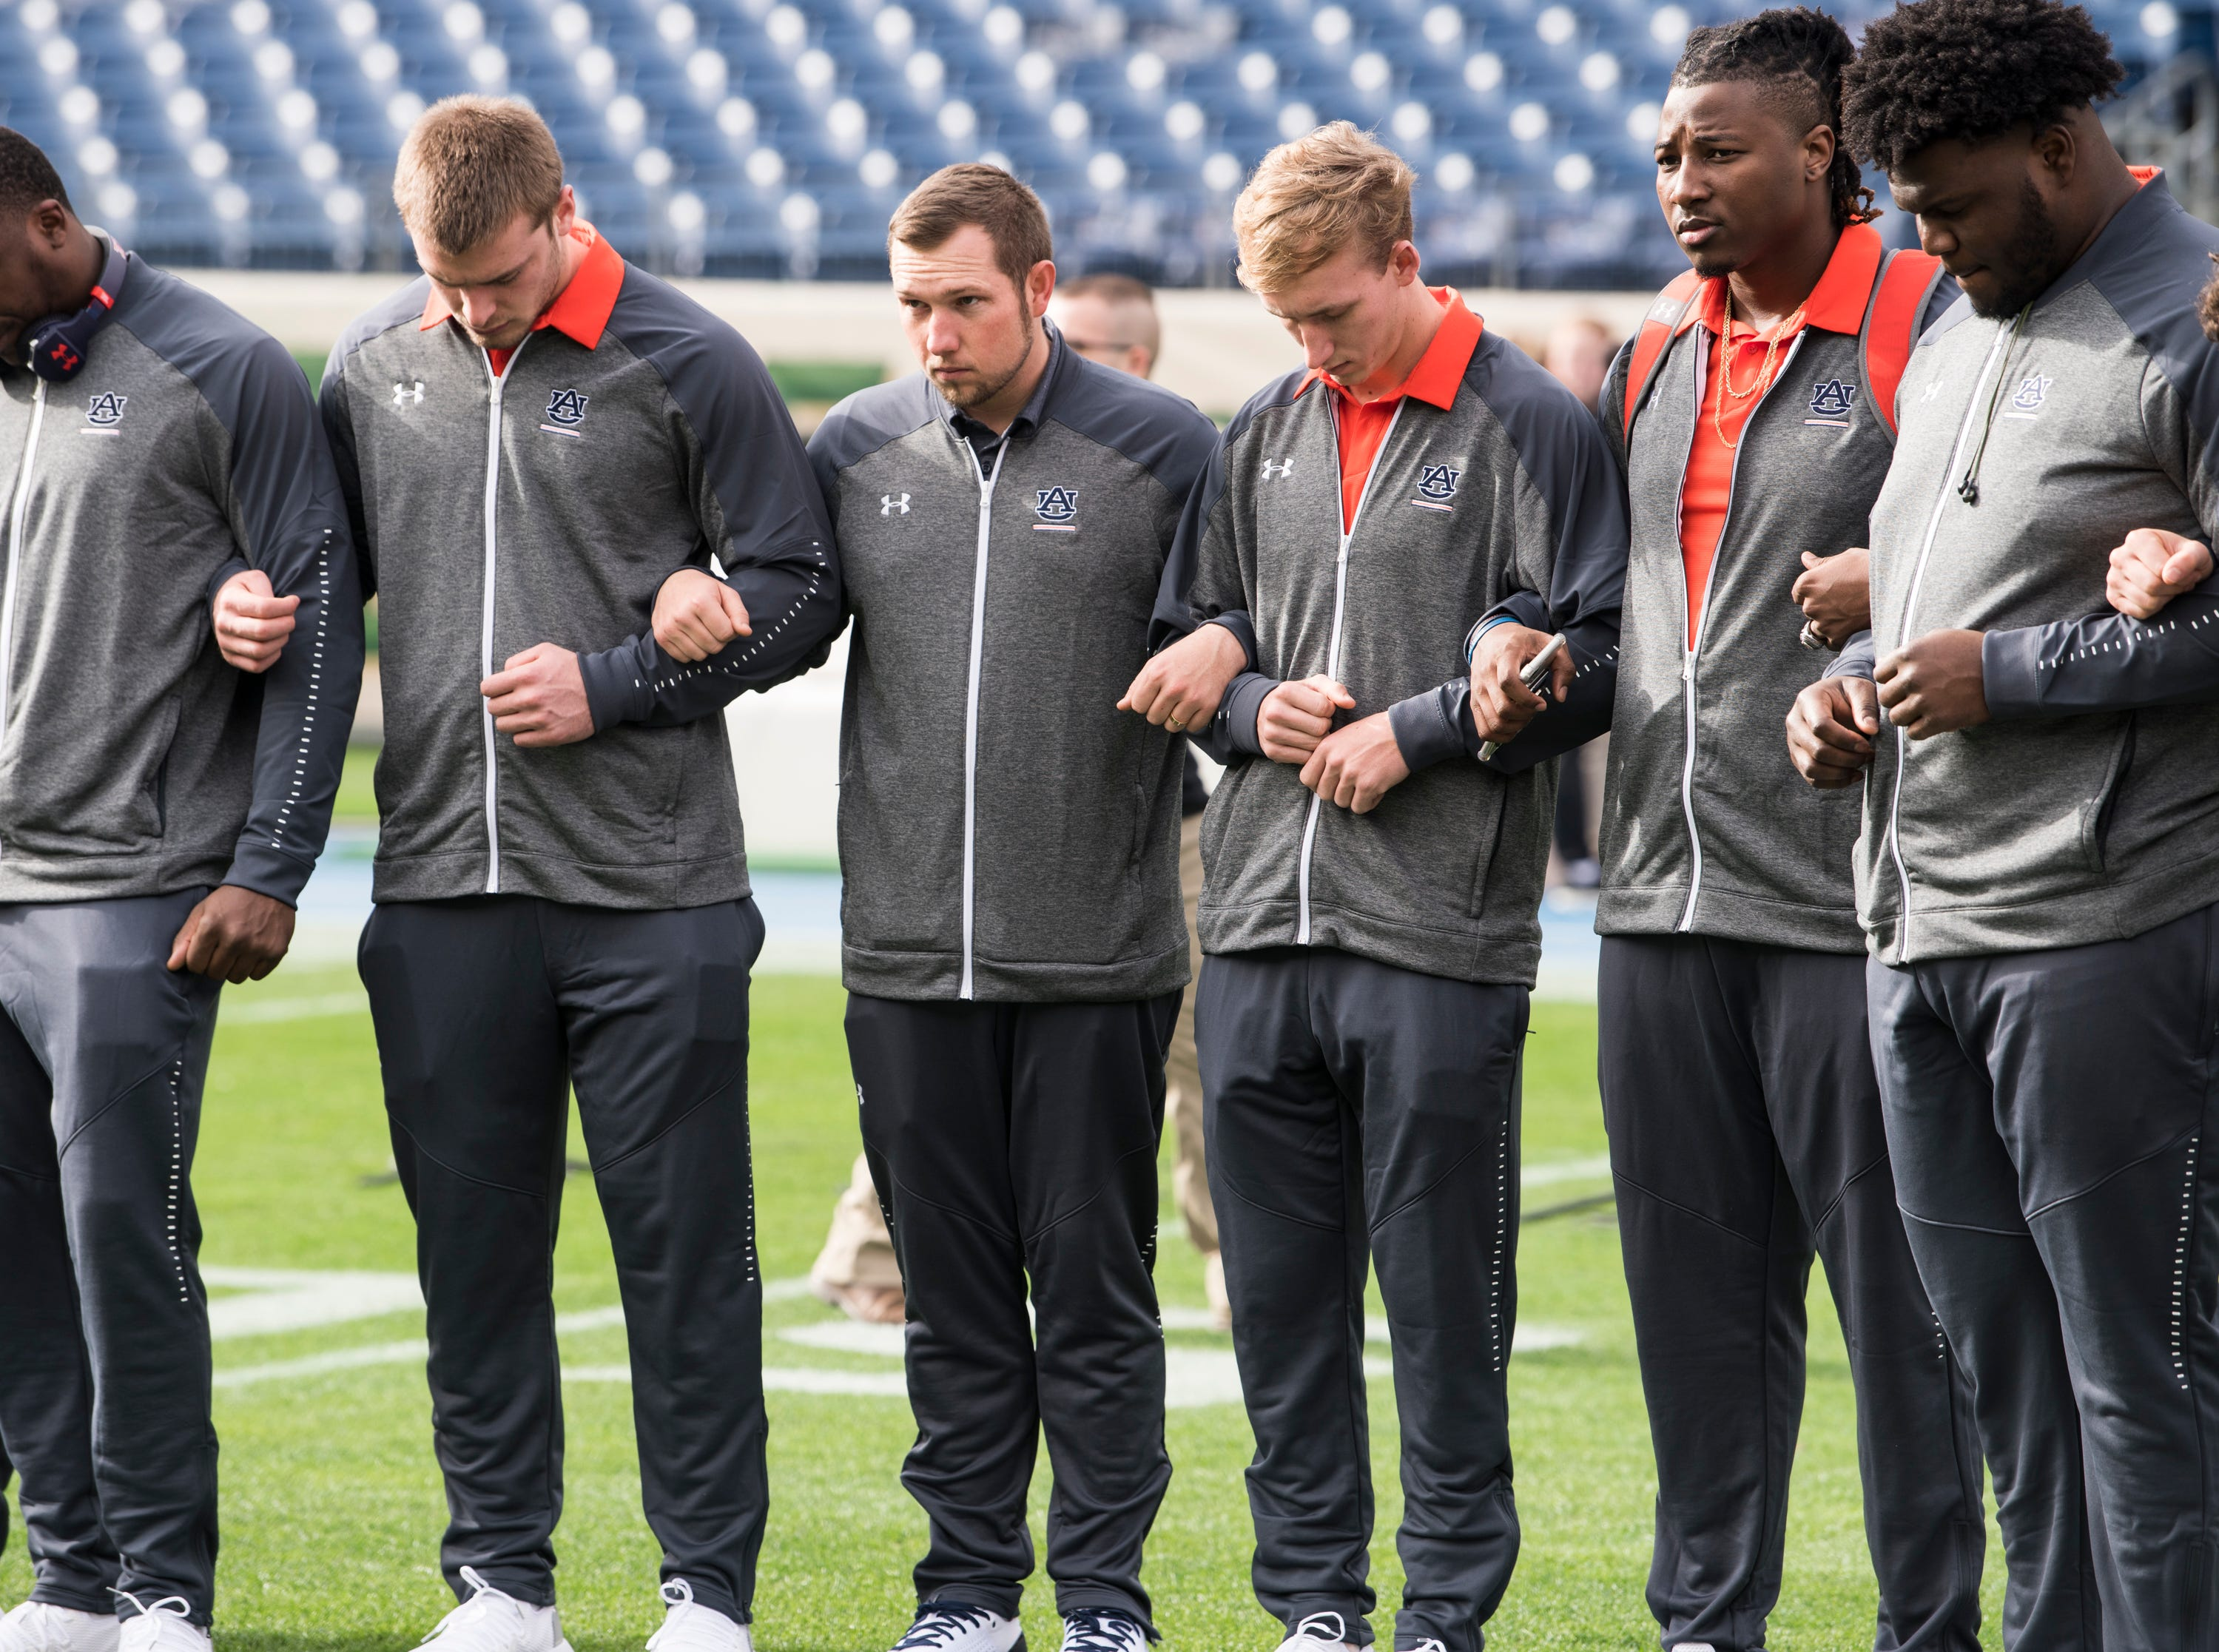 Auburn offensive coordinator Kenny Dillingham, middle, prays with the team before they take on Purdue in the Music City Bowl at Nissan Stadium in Nashville, Tenn., on Friday, Dec. 28, 2018.